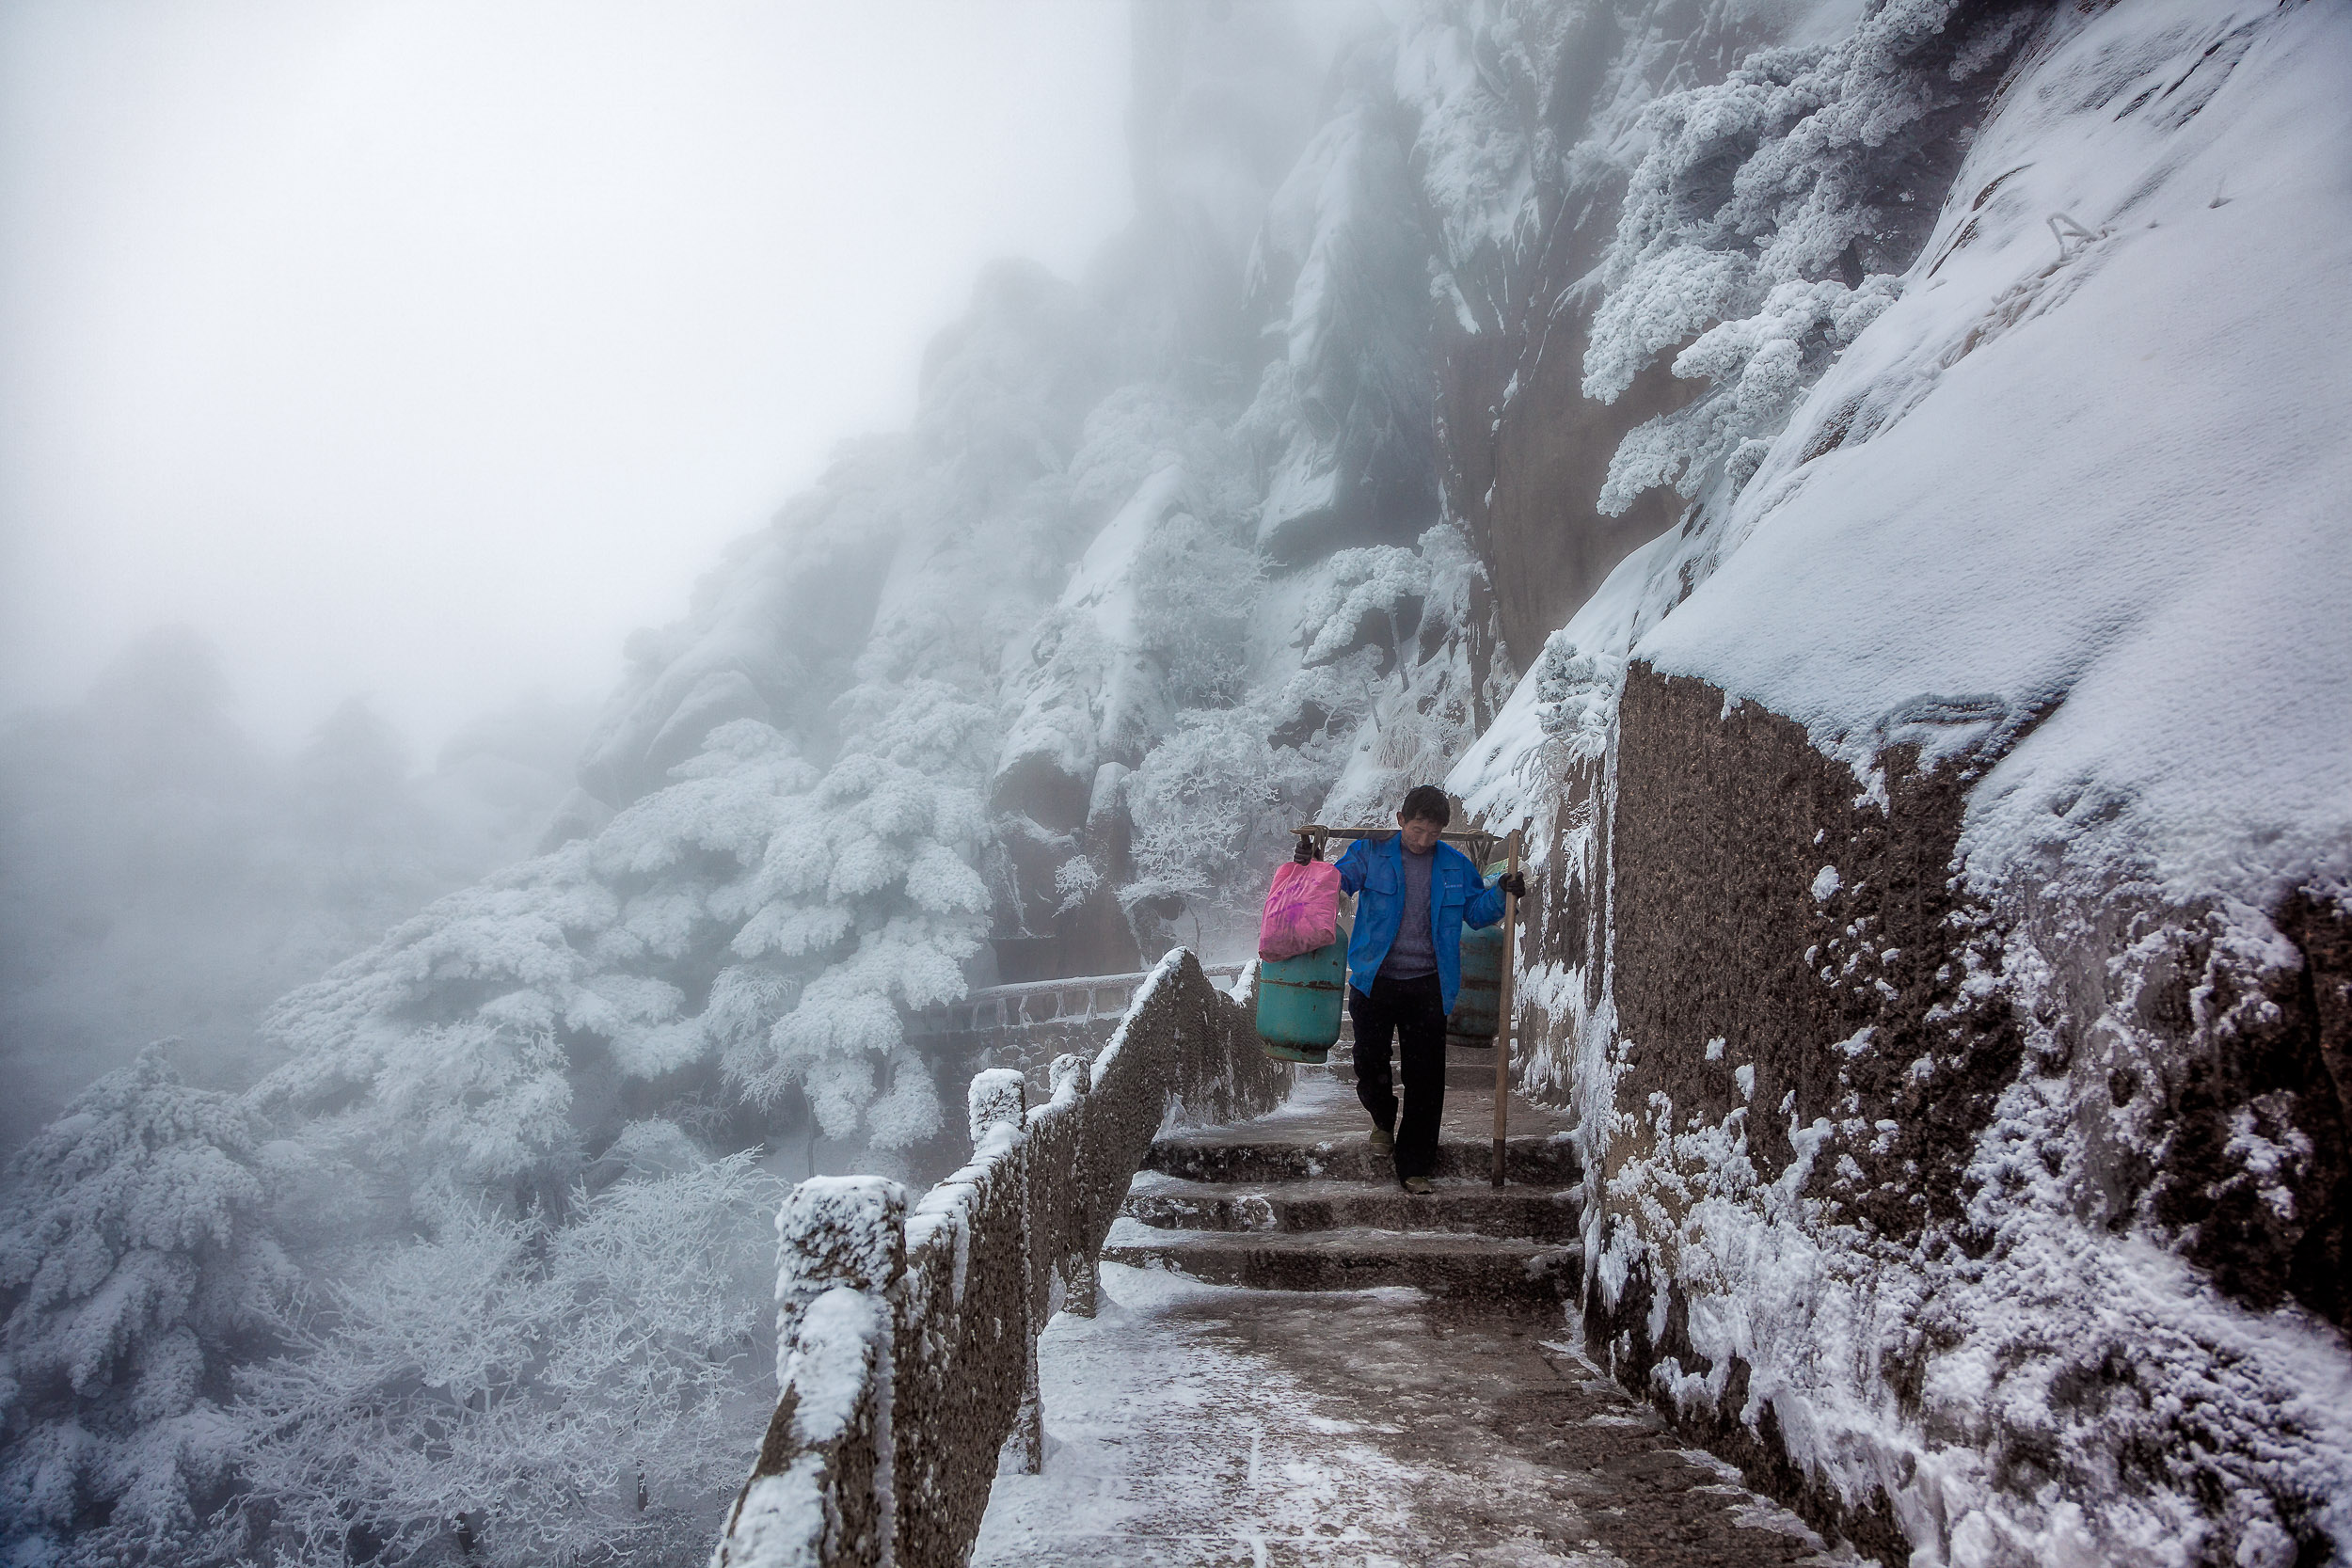 A porter, loaded with goods , walks a windy and exposed path on Huangshan (i.e., Yellow Mountain), China .